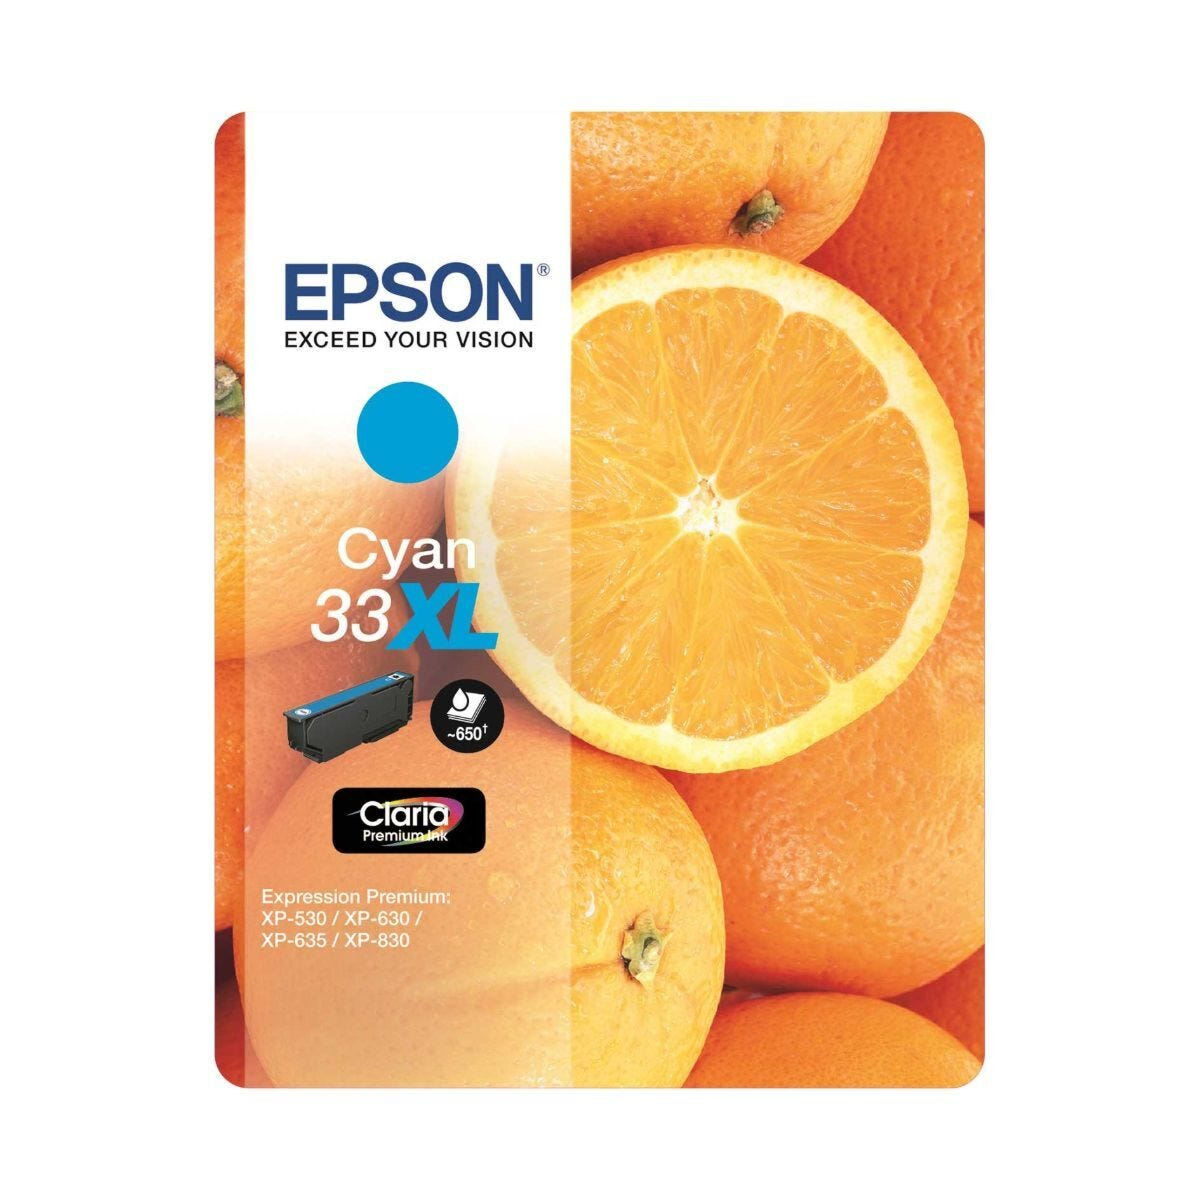 Epson 33 Orange Home Ink Cartridge XL Cyan